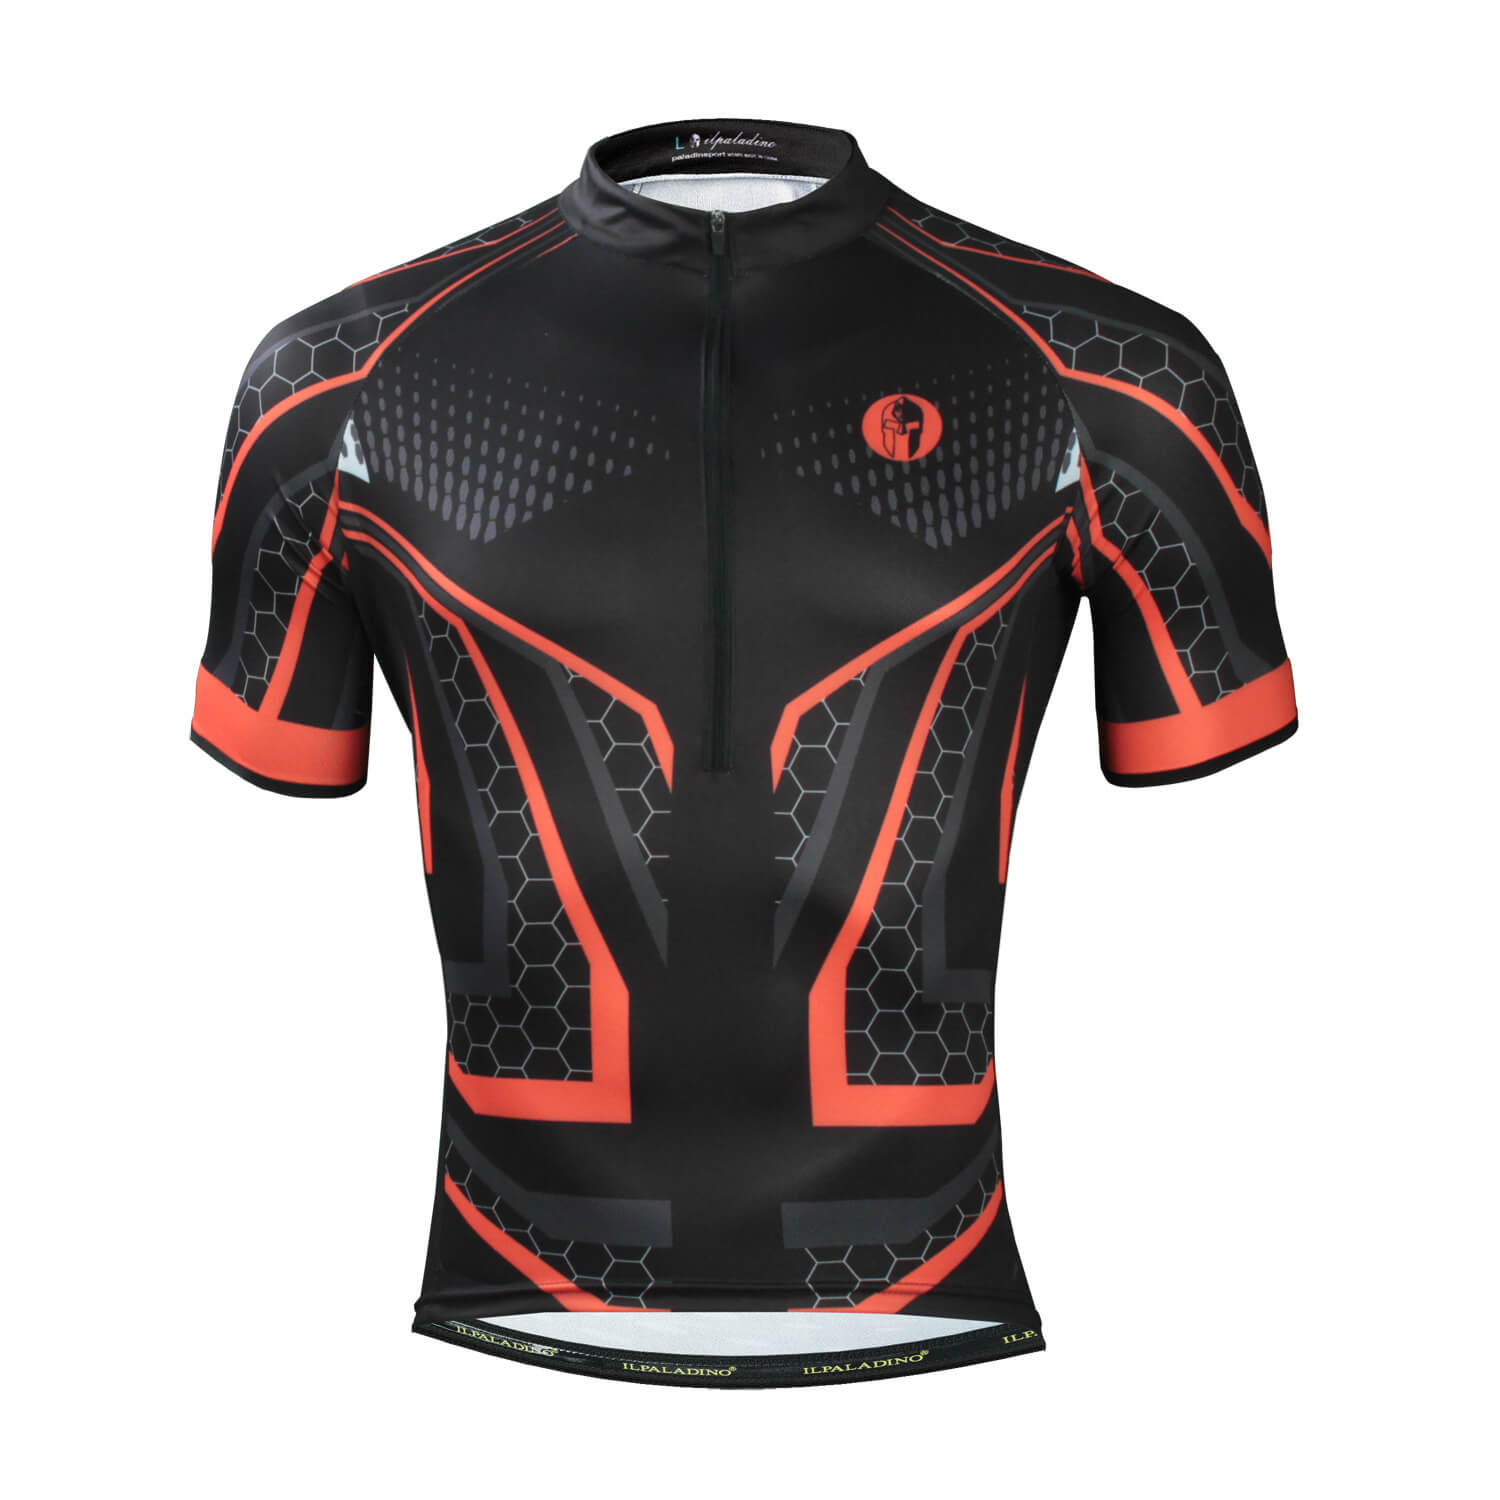 Quality Cycling Clothes Mens Best Cycling Jerseys with LED Signal Lights